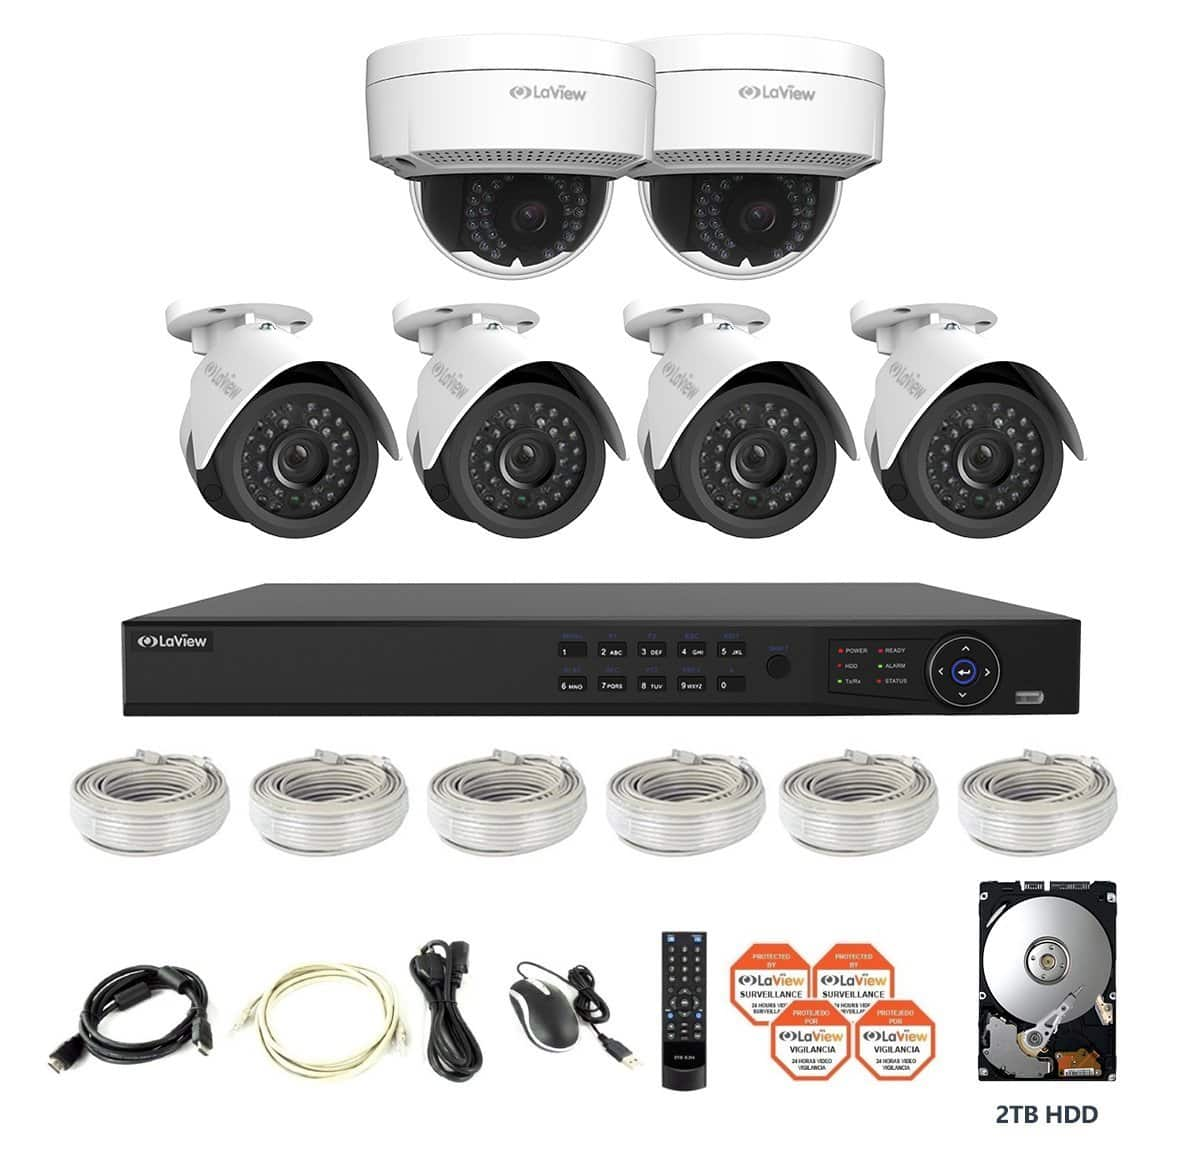 LaView 6 IP Camera Security System 1080P  PoE 8 CH ONVIF NVR w/2TB HDD & 4 Bullet, 2 Dome 2MP Cameras $415.00 Free Shipping